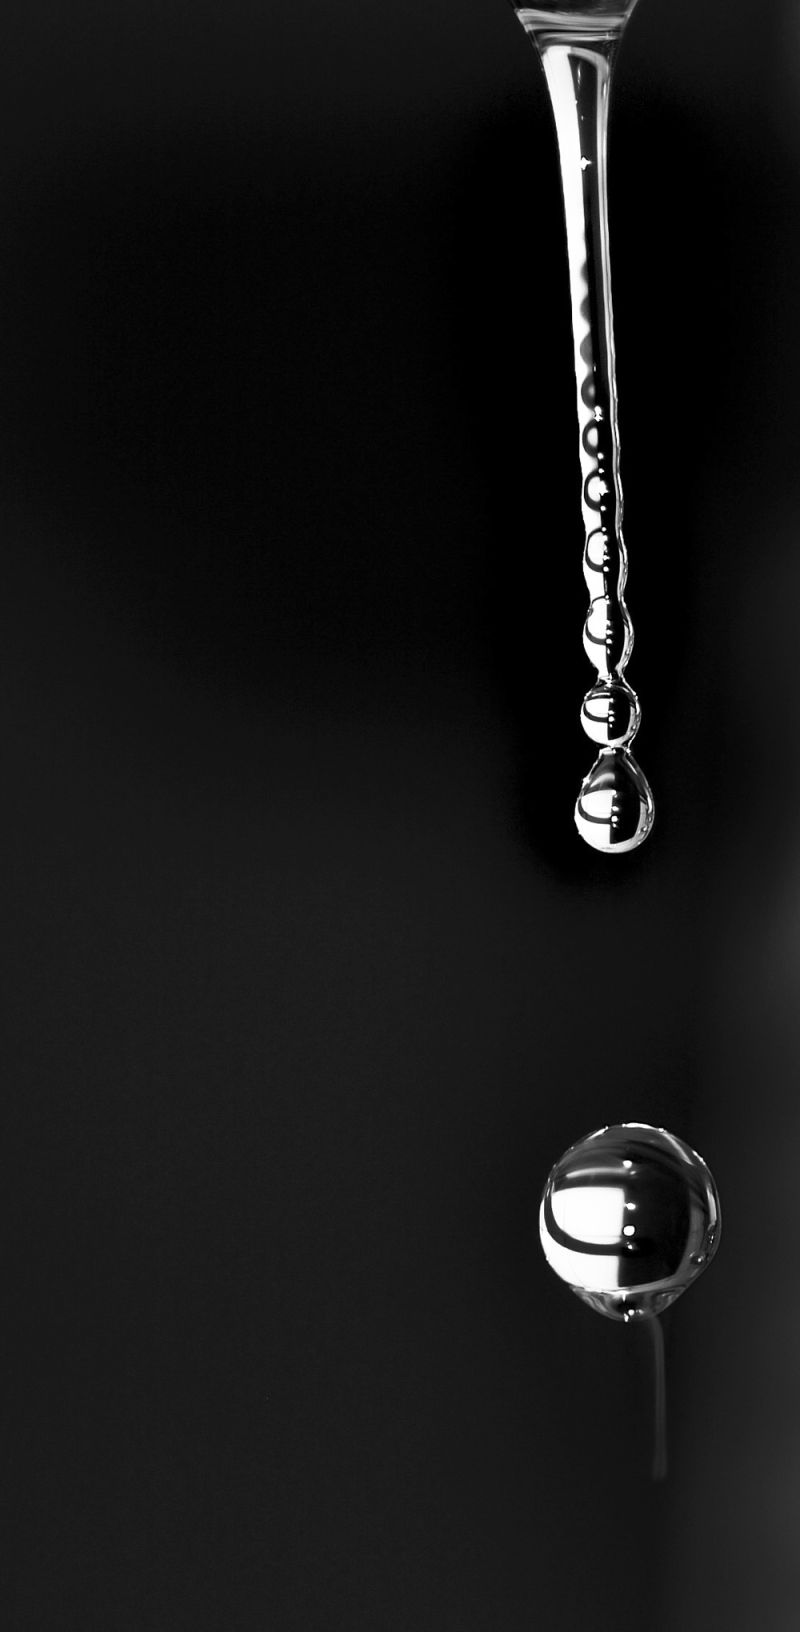 Water Drop (B&W)